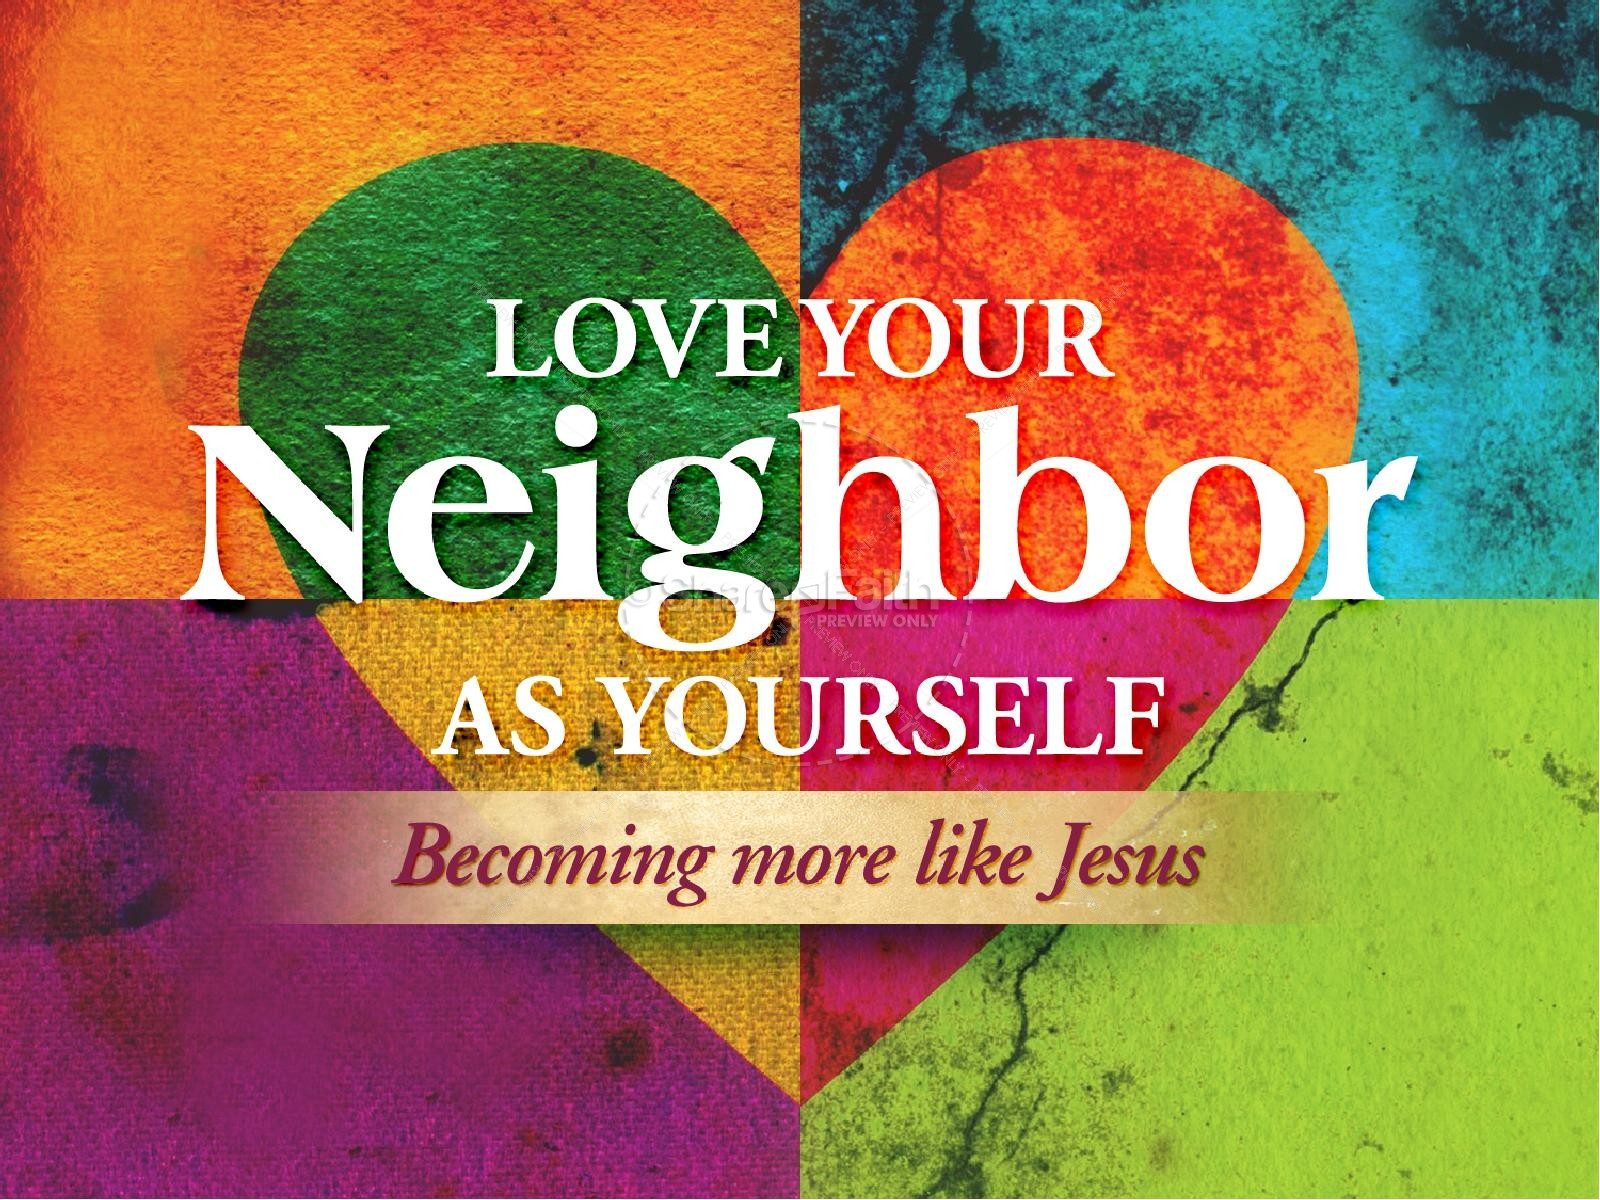 Free like yourself cliparts. Neighbors clipart welcome guest